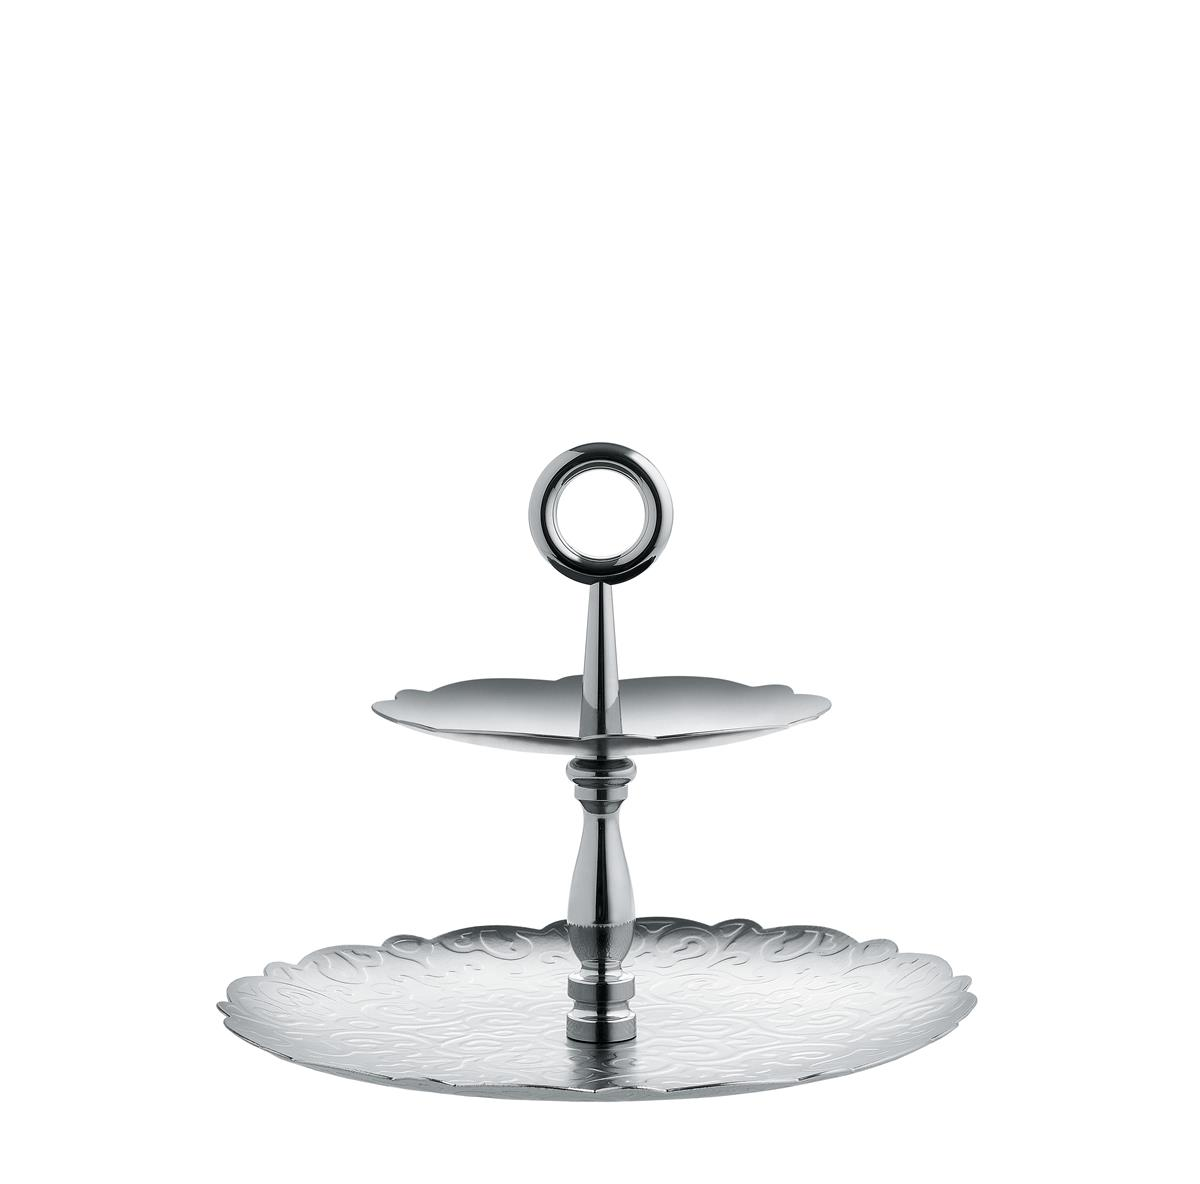 Alessi-Dressed Two-piece stand in 18/10 stainless steel with relief decoration